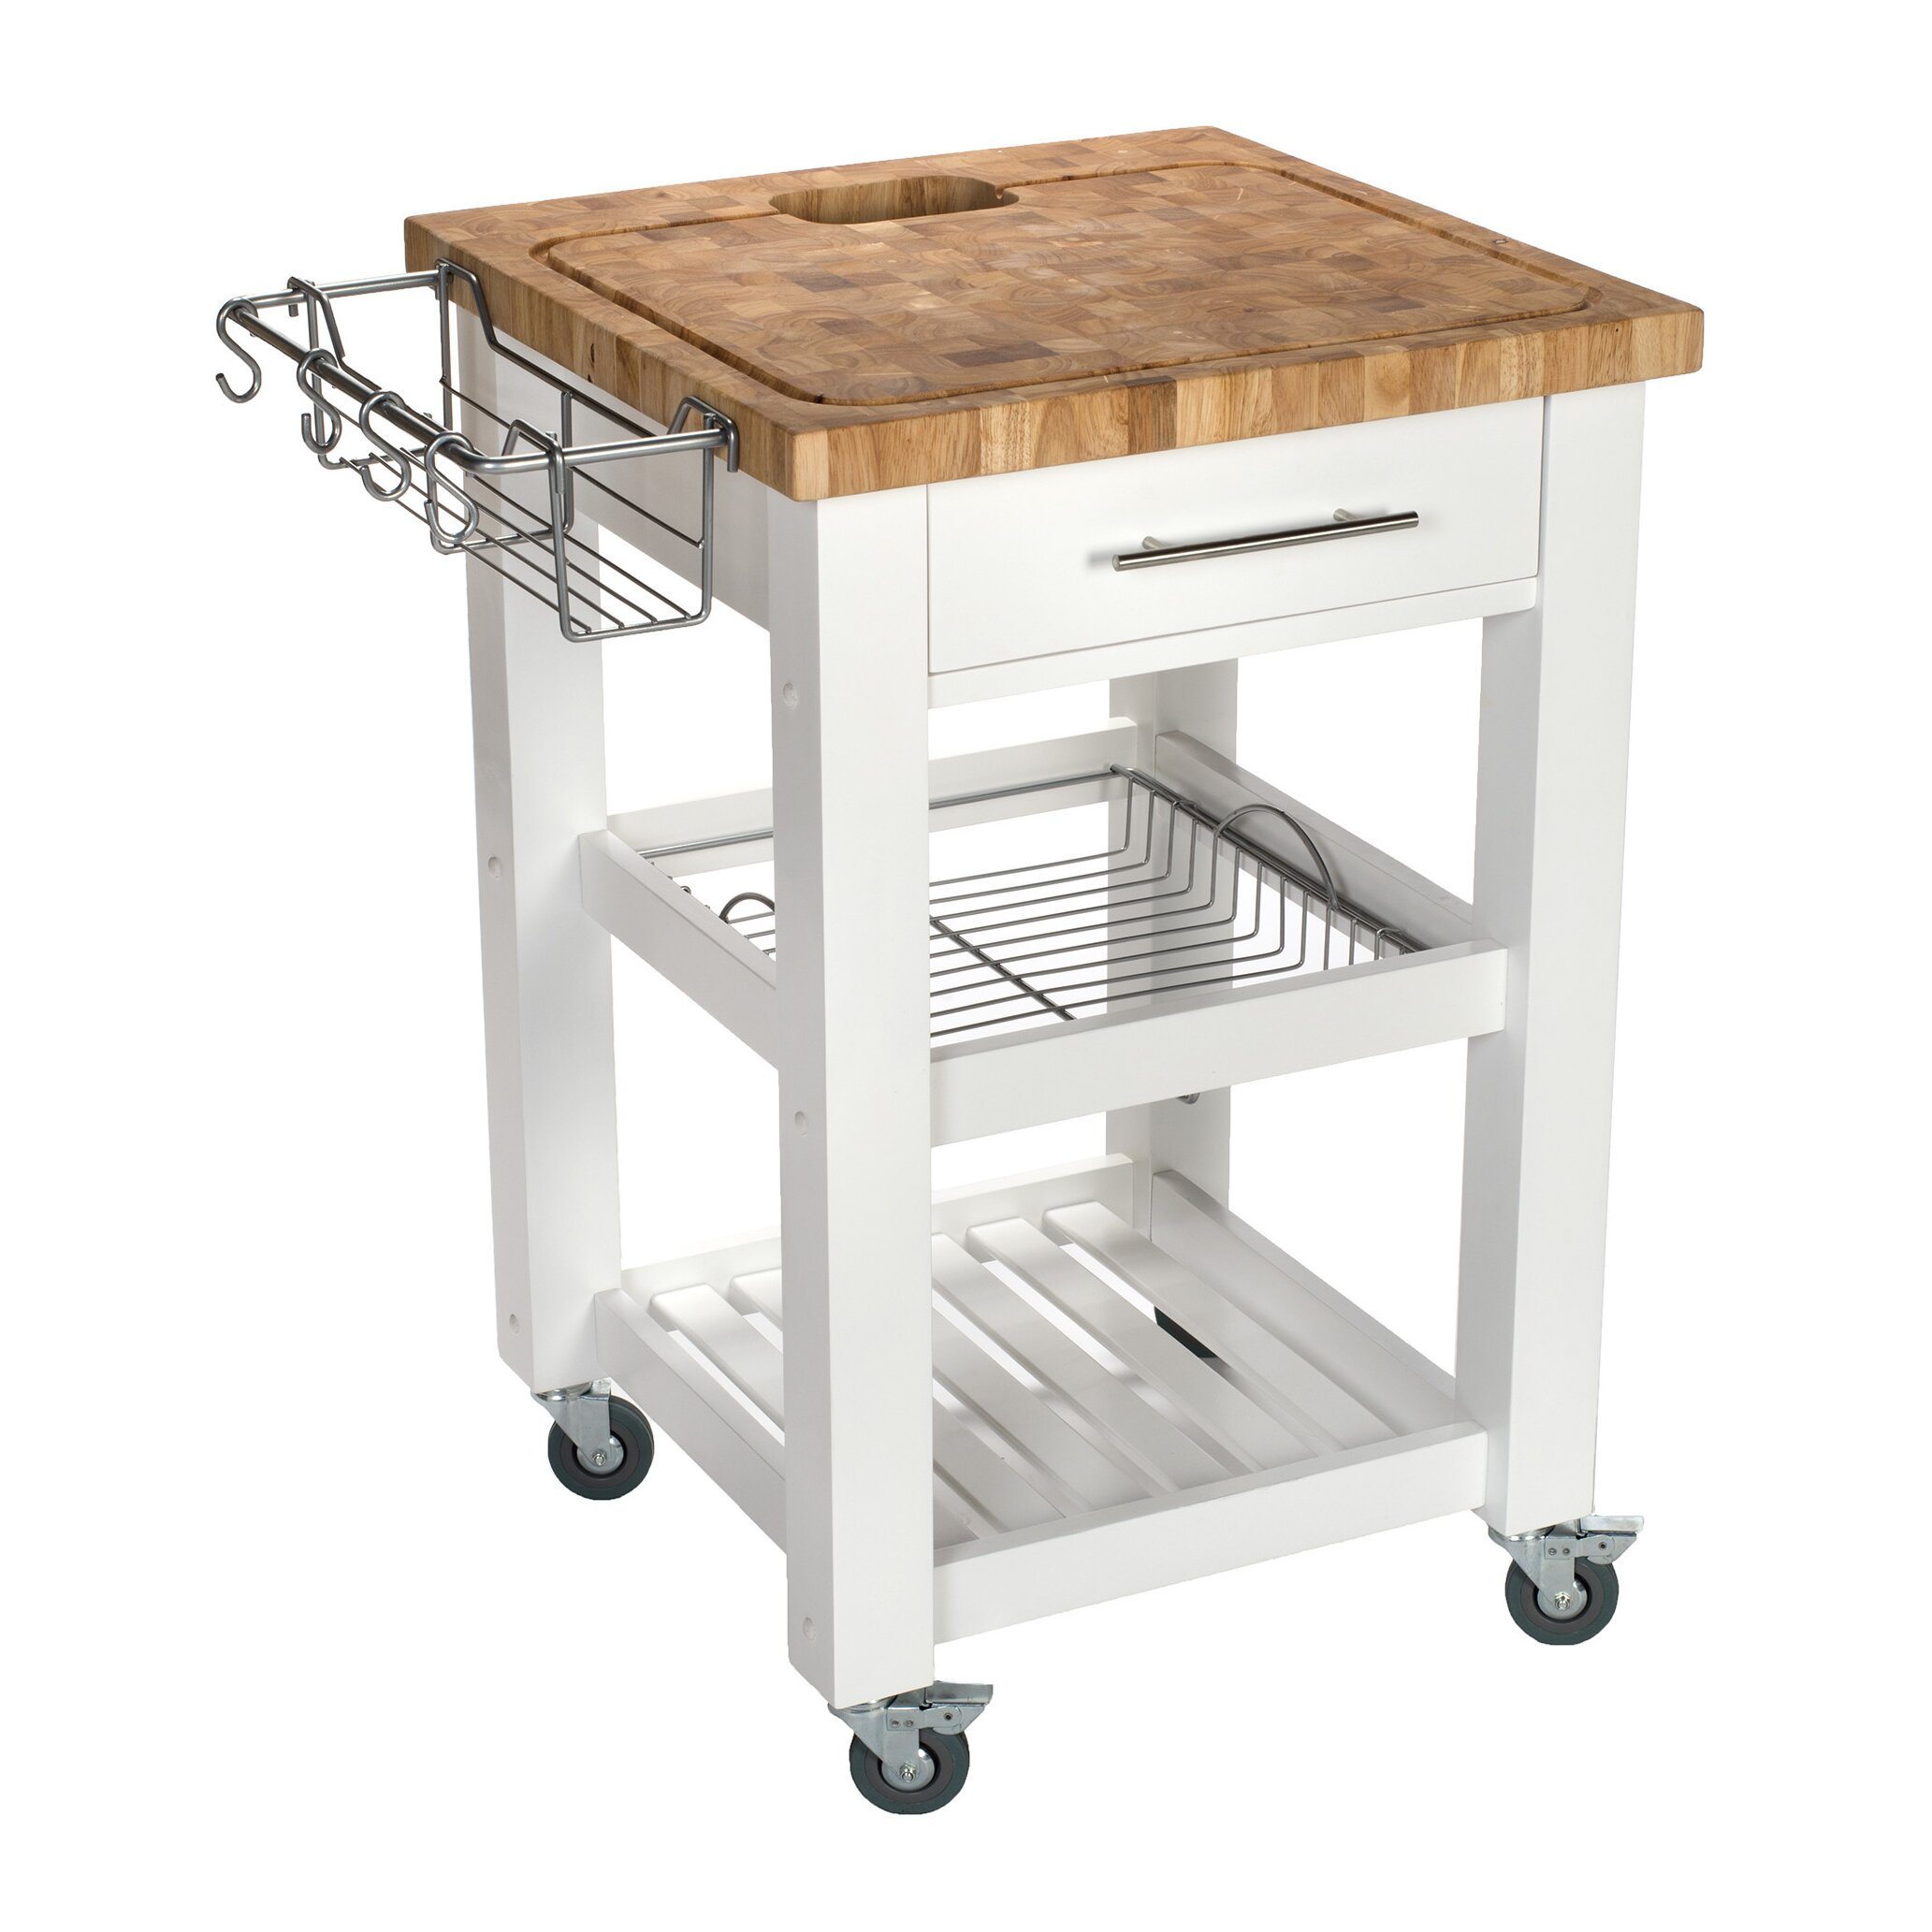 Chris Chris Pro Chef Kitchen Cart With Butcher Block Top